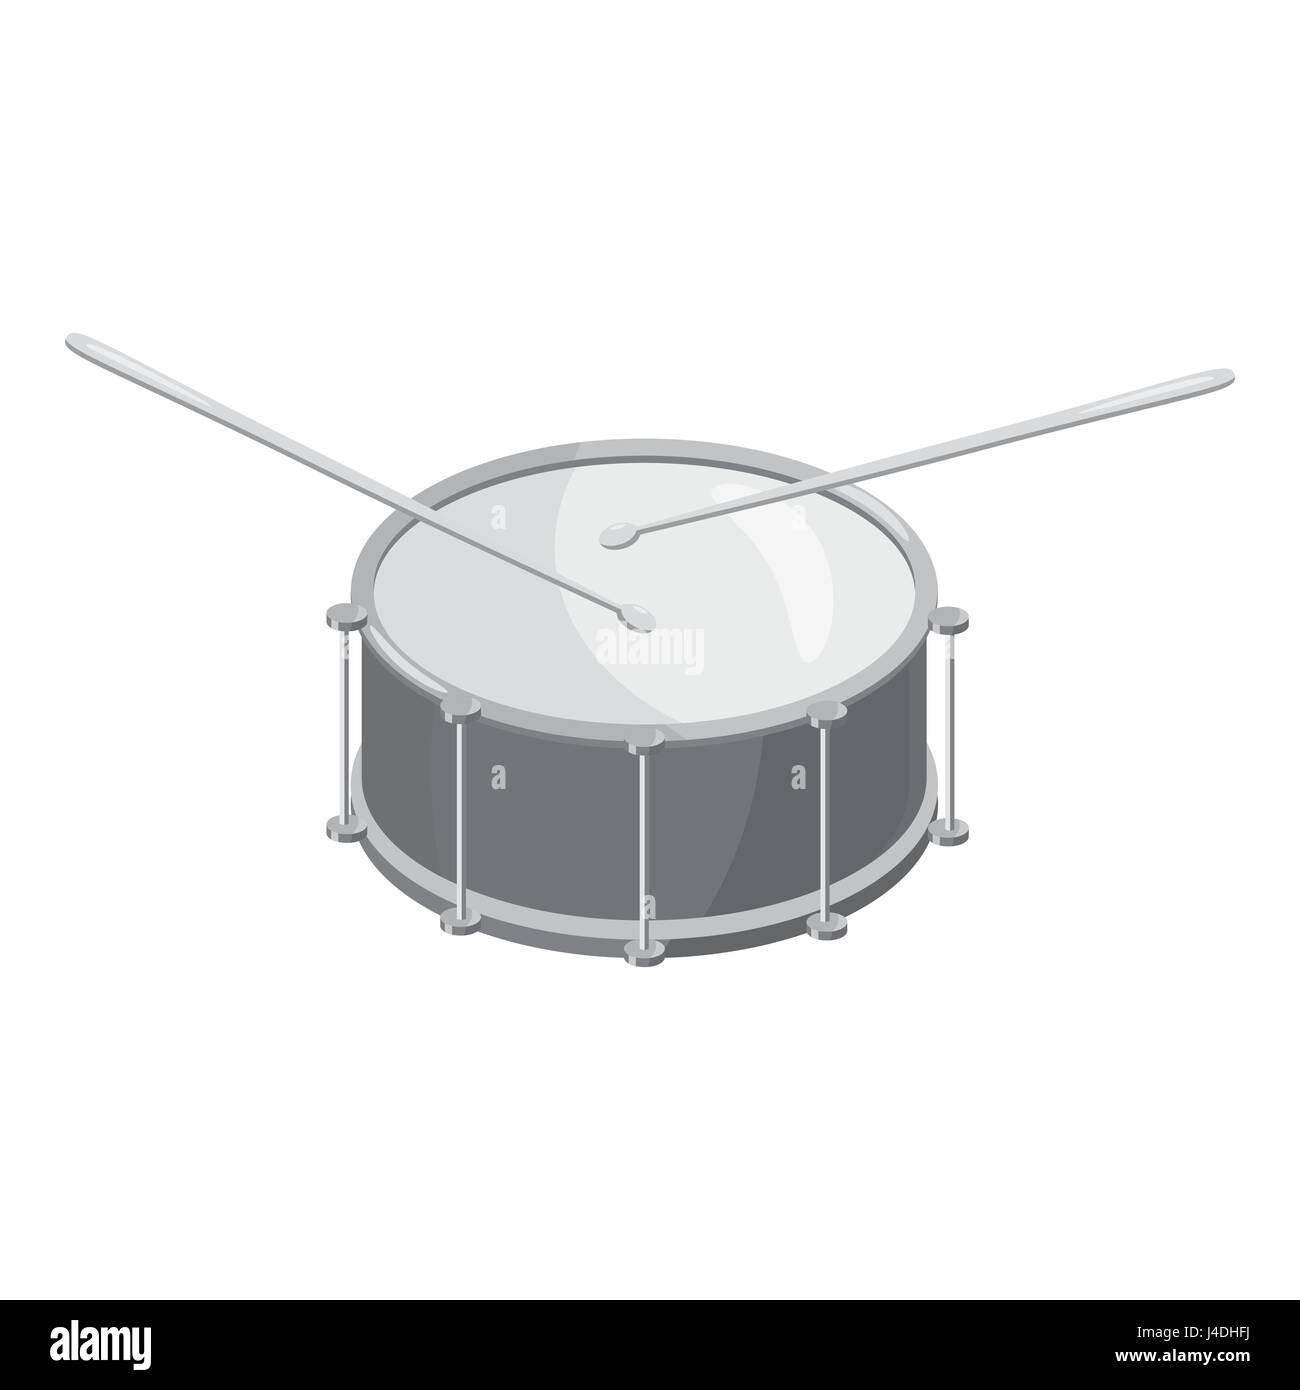 Drum Sticks Instrument Stock Photos Snare Diagram With Icon Gray Monochrome Style Image